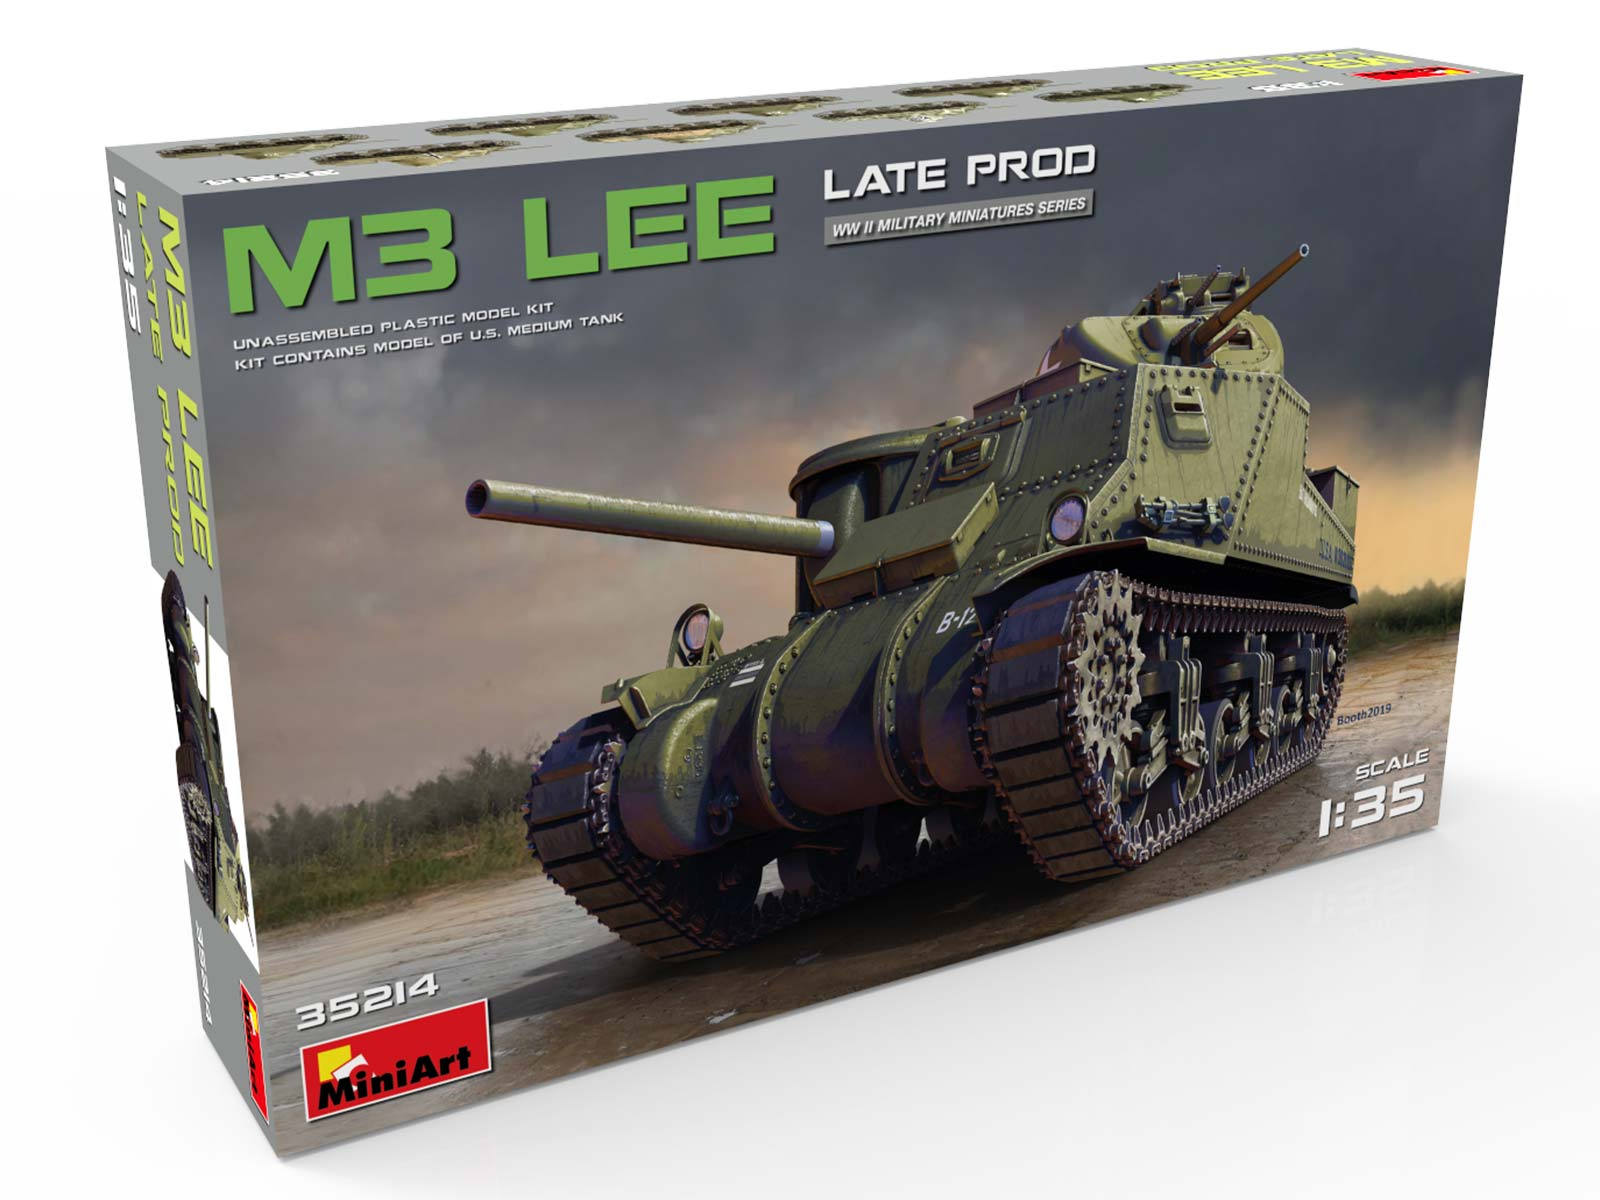 New Photos of Kit: 35214 M3 LEE LATE PROD.